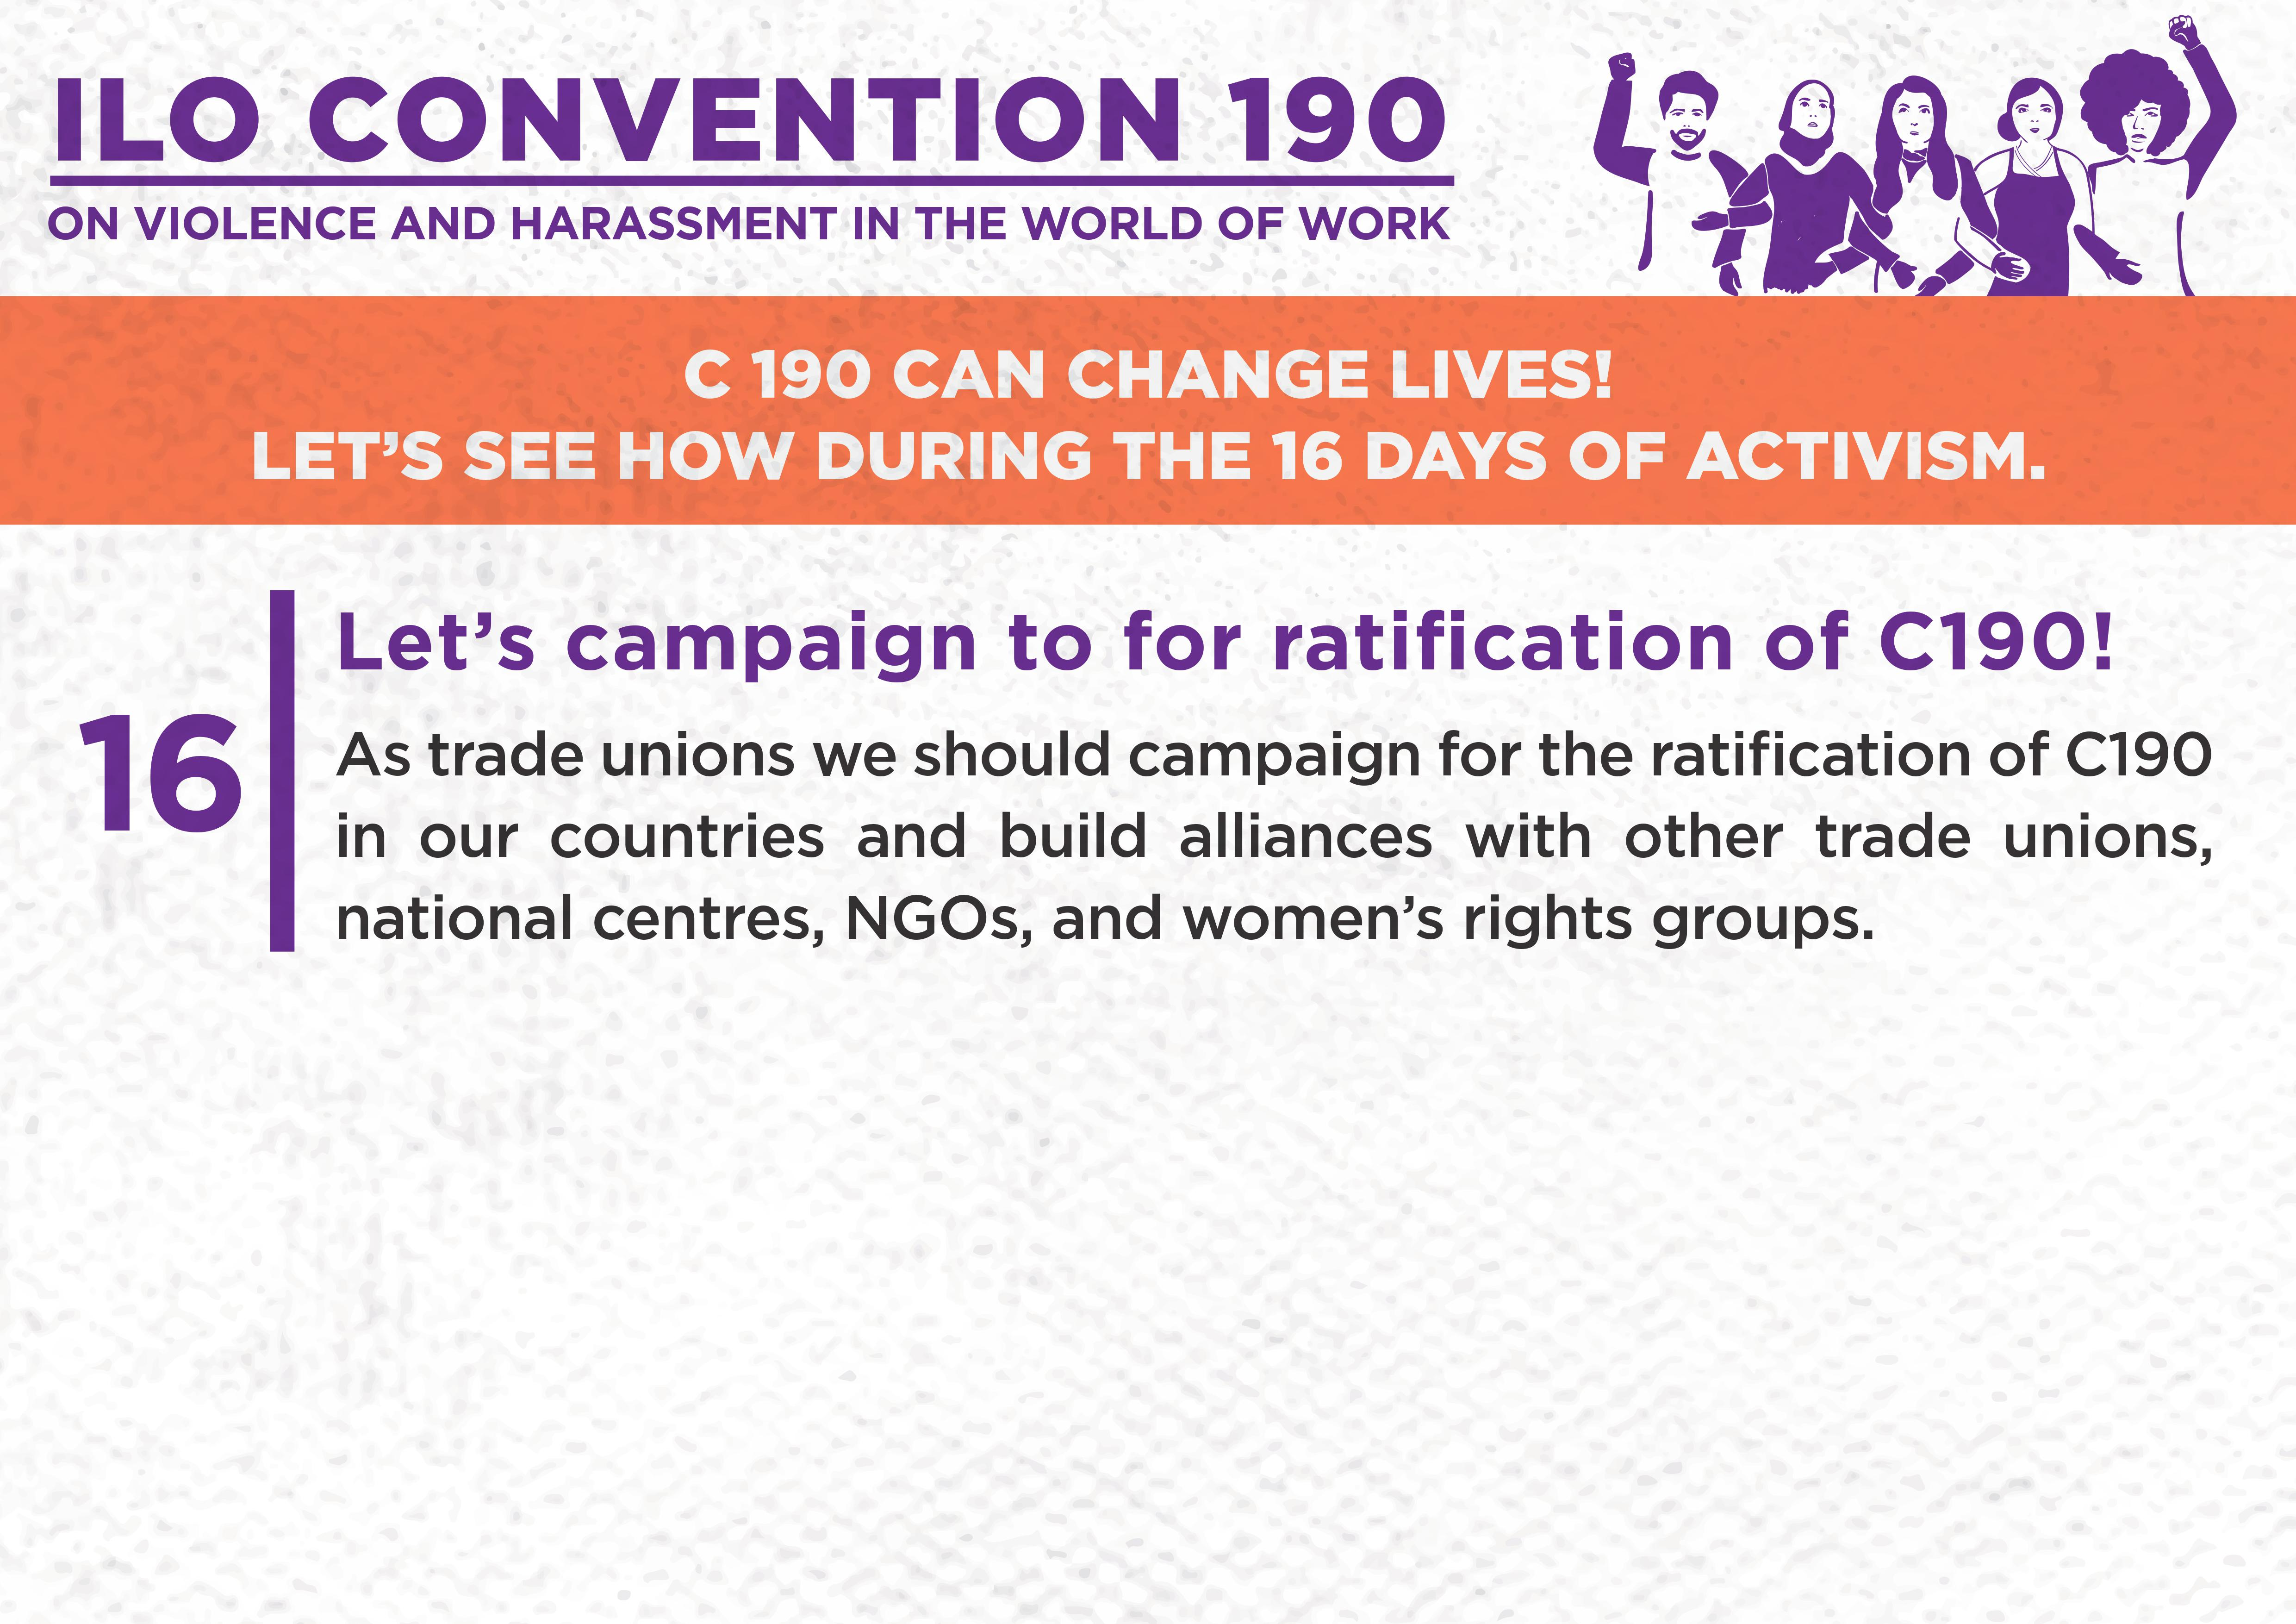 16. Let's campaign to for ratification of C190!